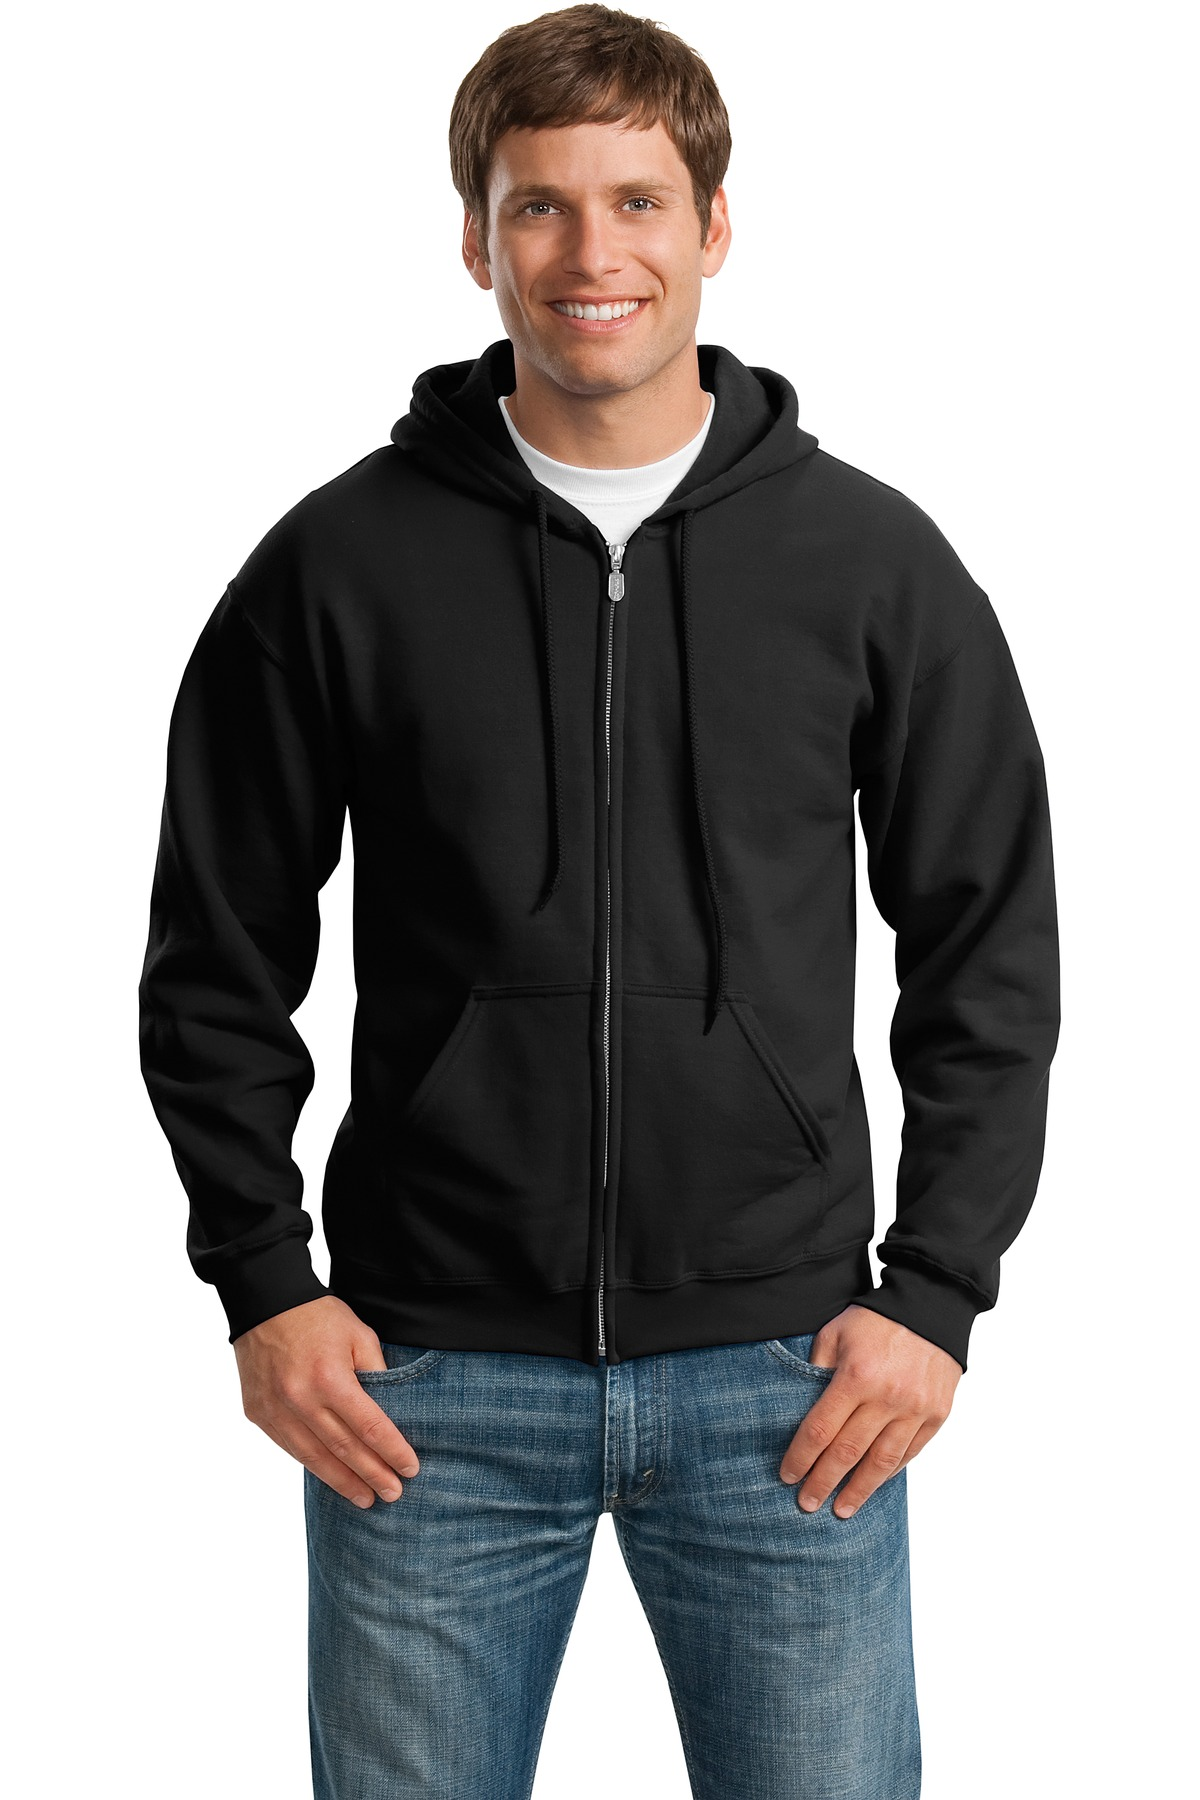 Gildan ®  - Heavy Blend™ Full-Zip Hooded Sweatshirt. 18600 - Black